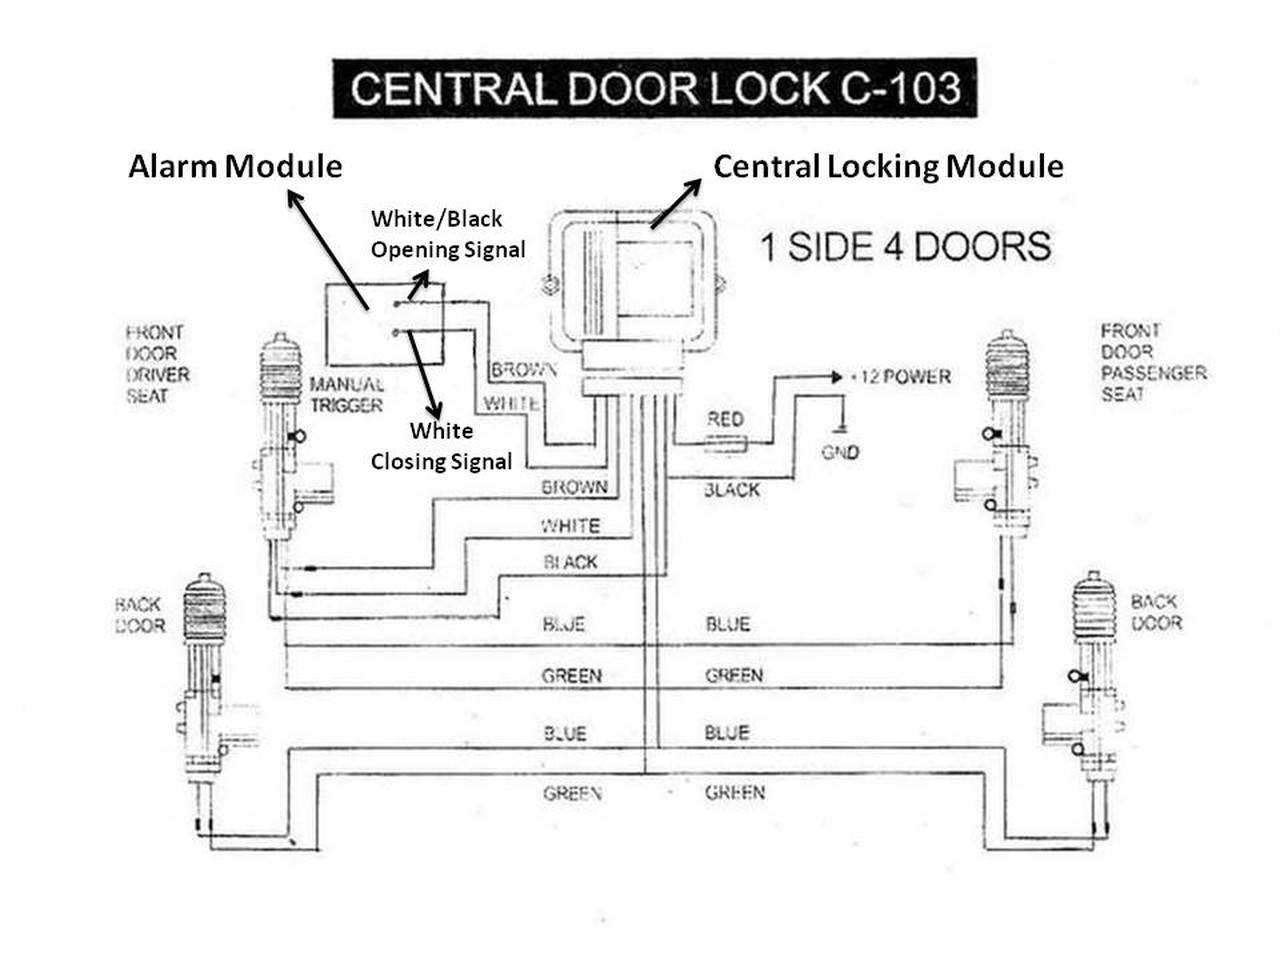 Remote Central Locking Installation Guide | Wiring Diagram on ford keyless entry remote programming, ford keyless entry battery, toyota keyless entry wiring diagram, ford keyless entry system, mercedes keyless entry wiring diagram, ford keyless entry parts,